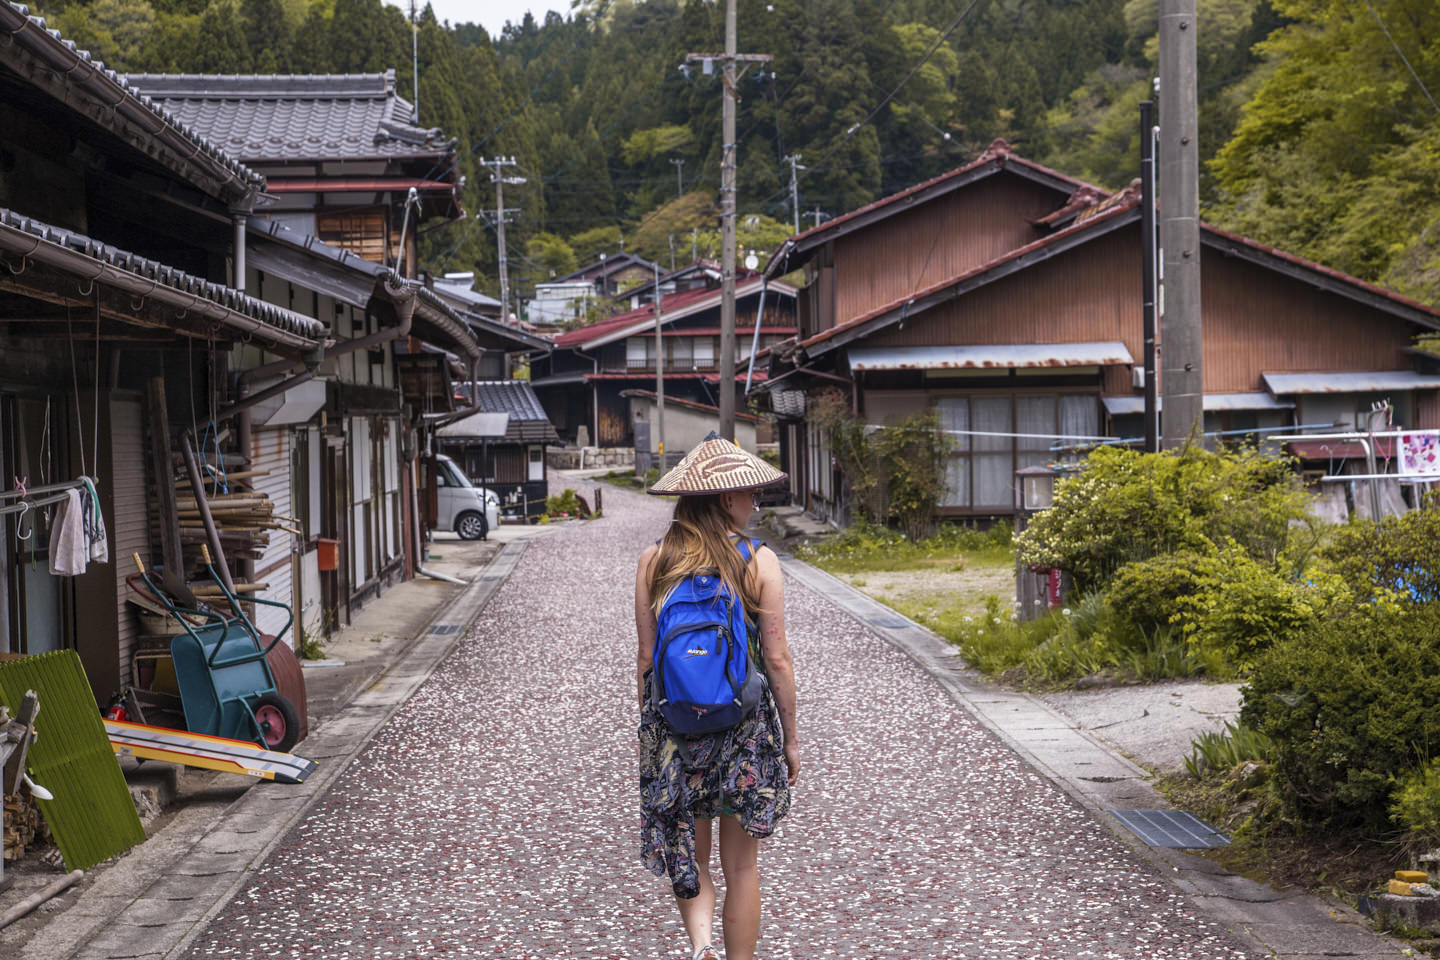 Hollie, donning conical hat walks the paved path of the Nakasendo Way